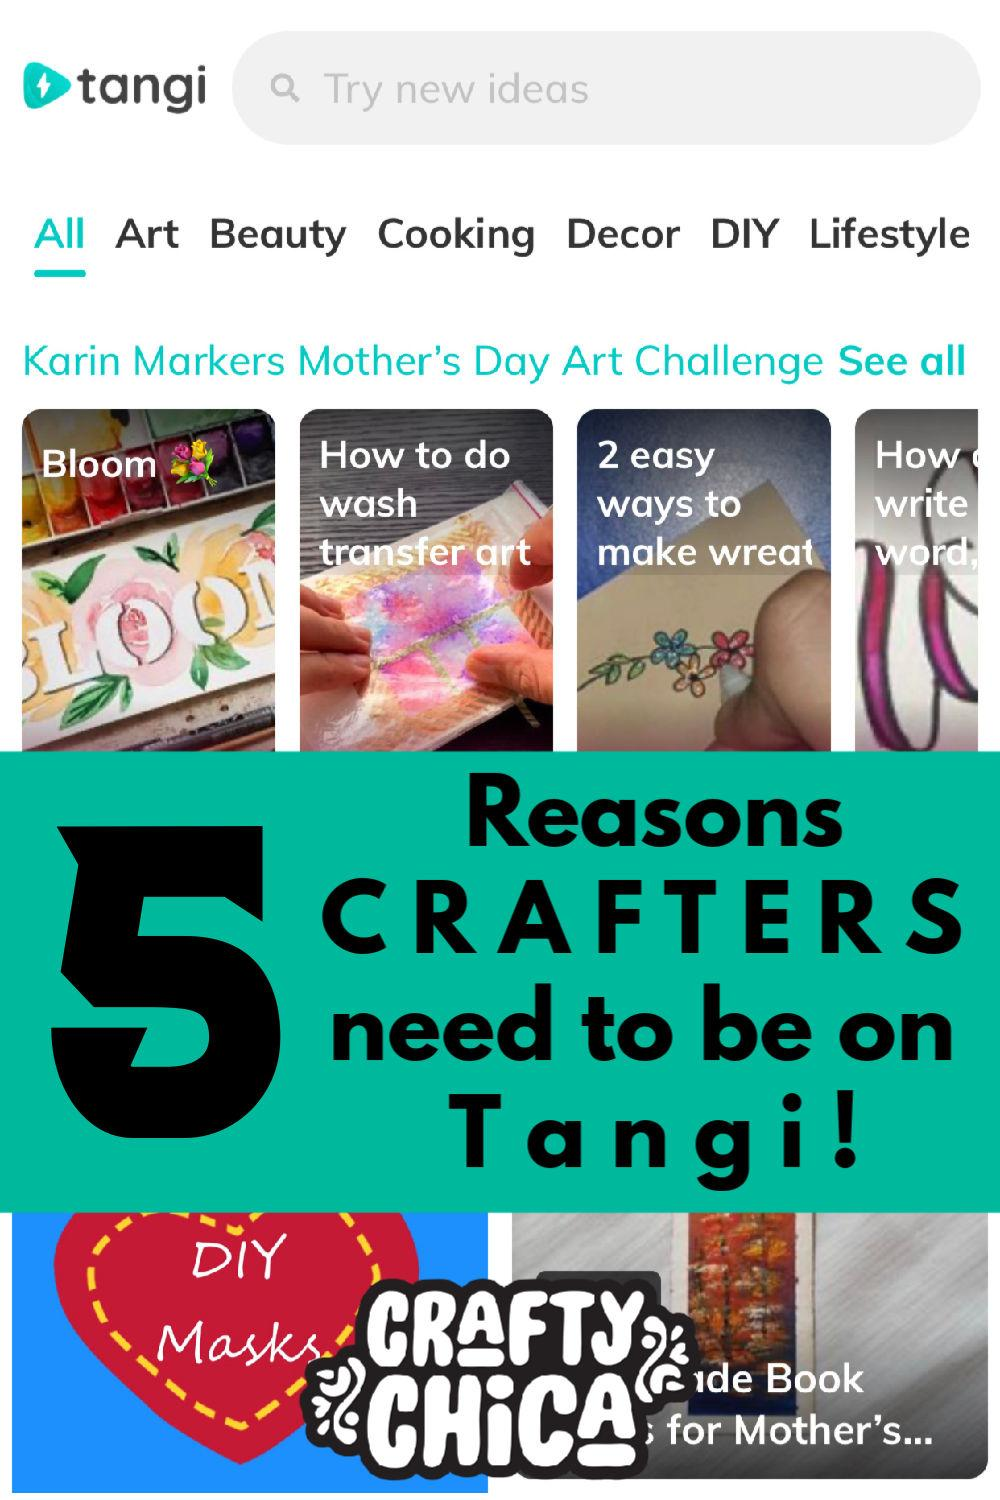 How to use Tangi app #craftychica #tangivideos